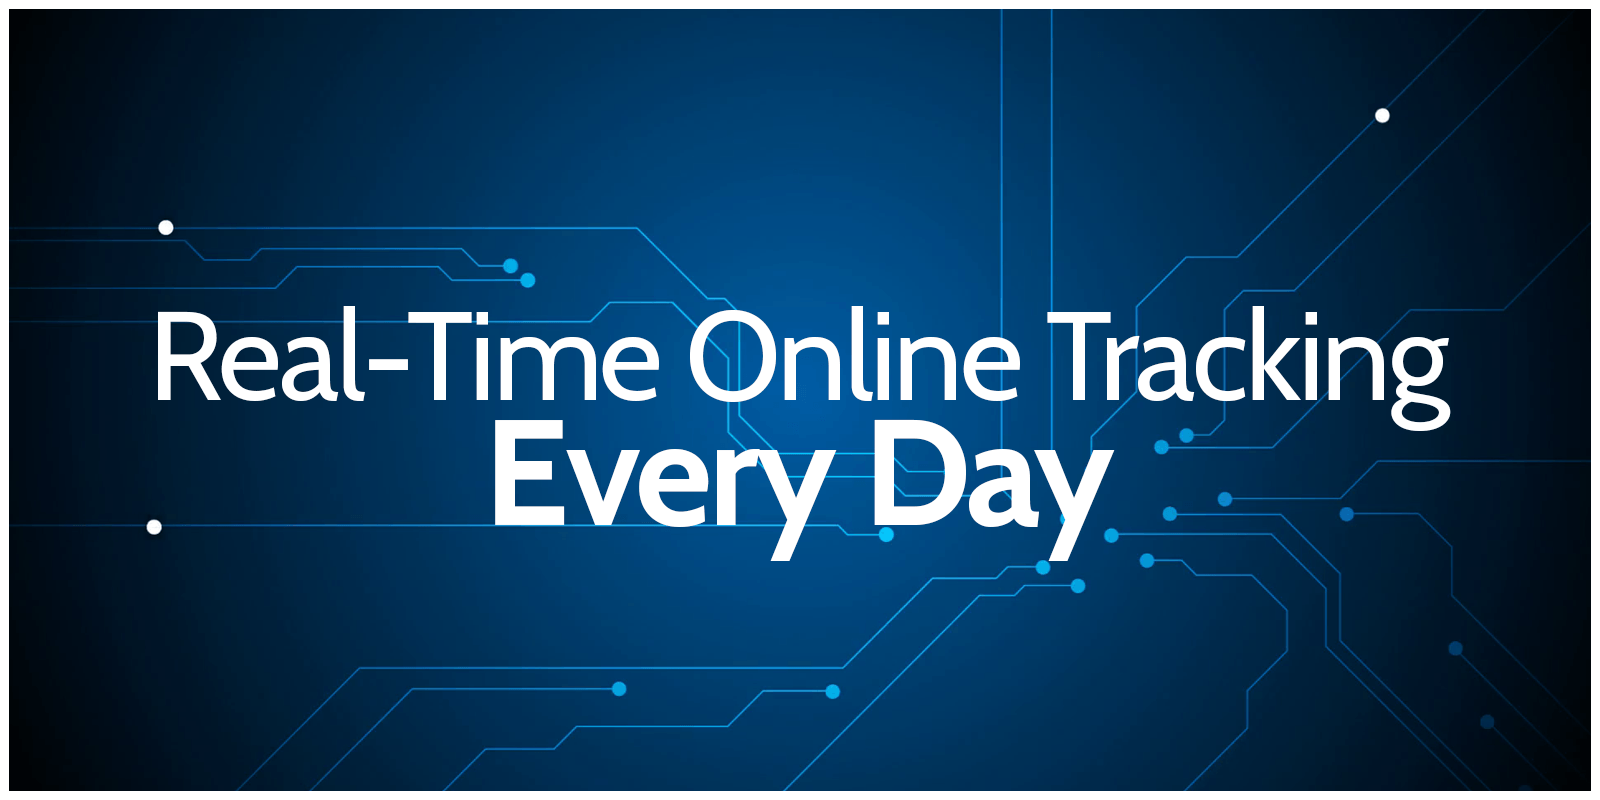 Real-time Online Tracking Every Day